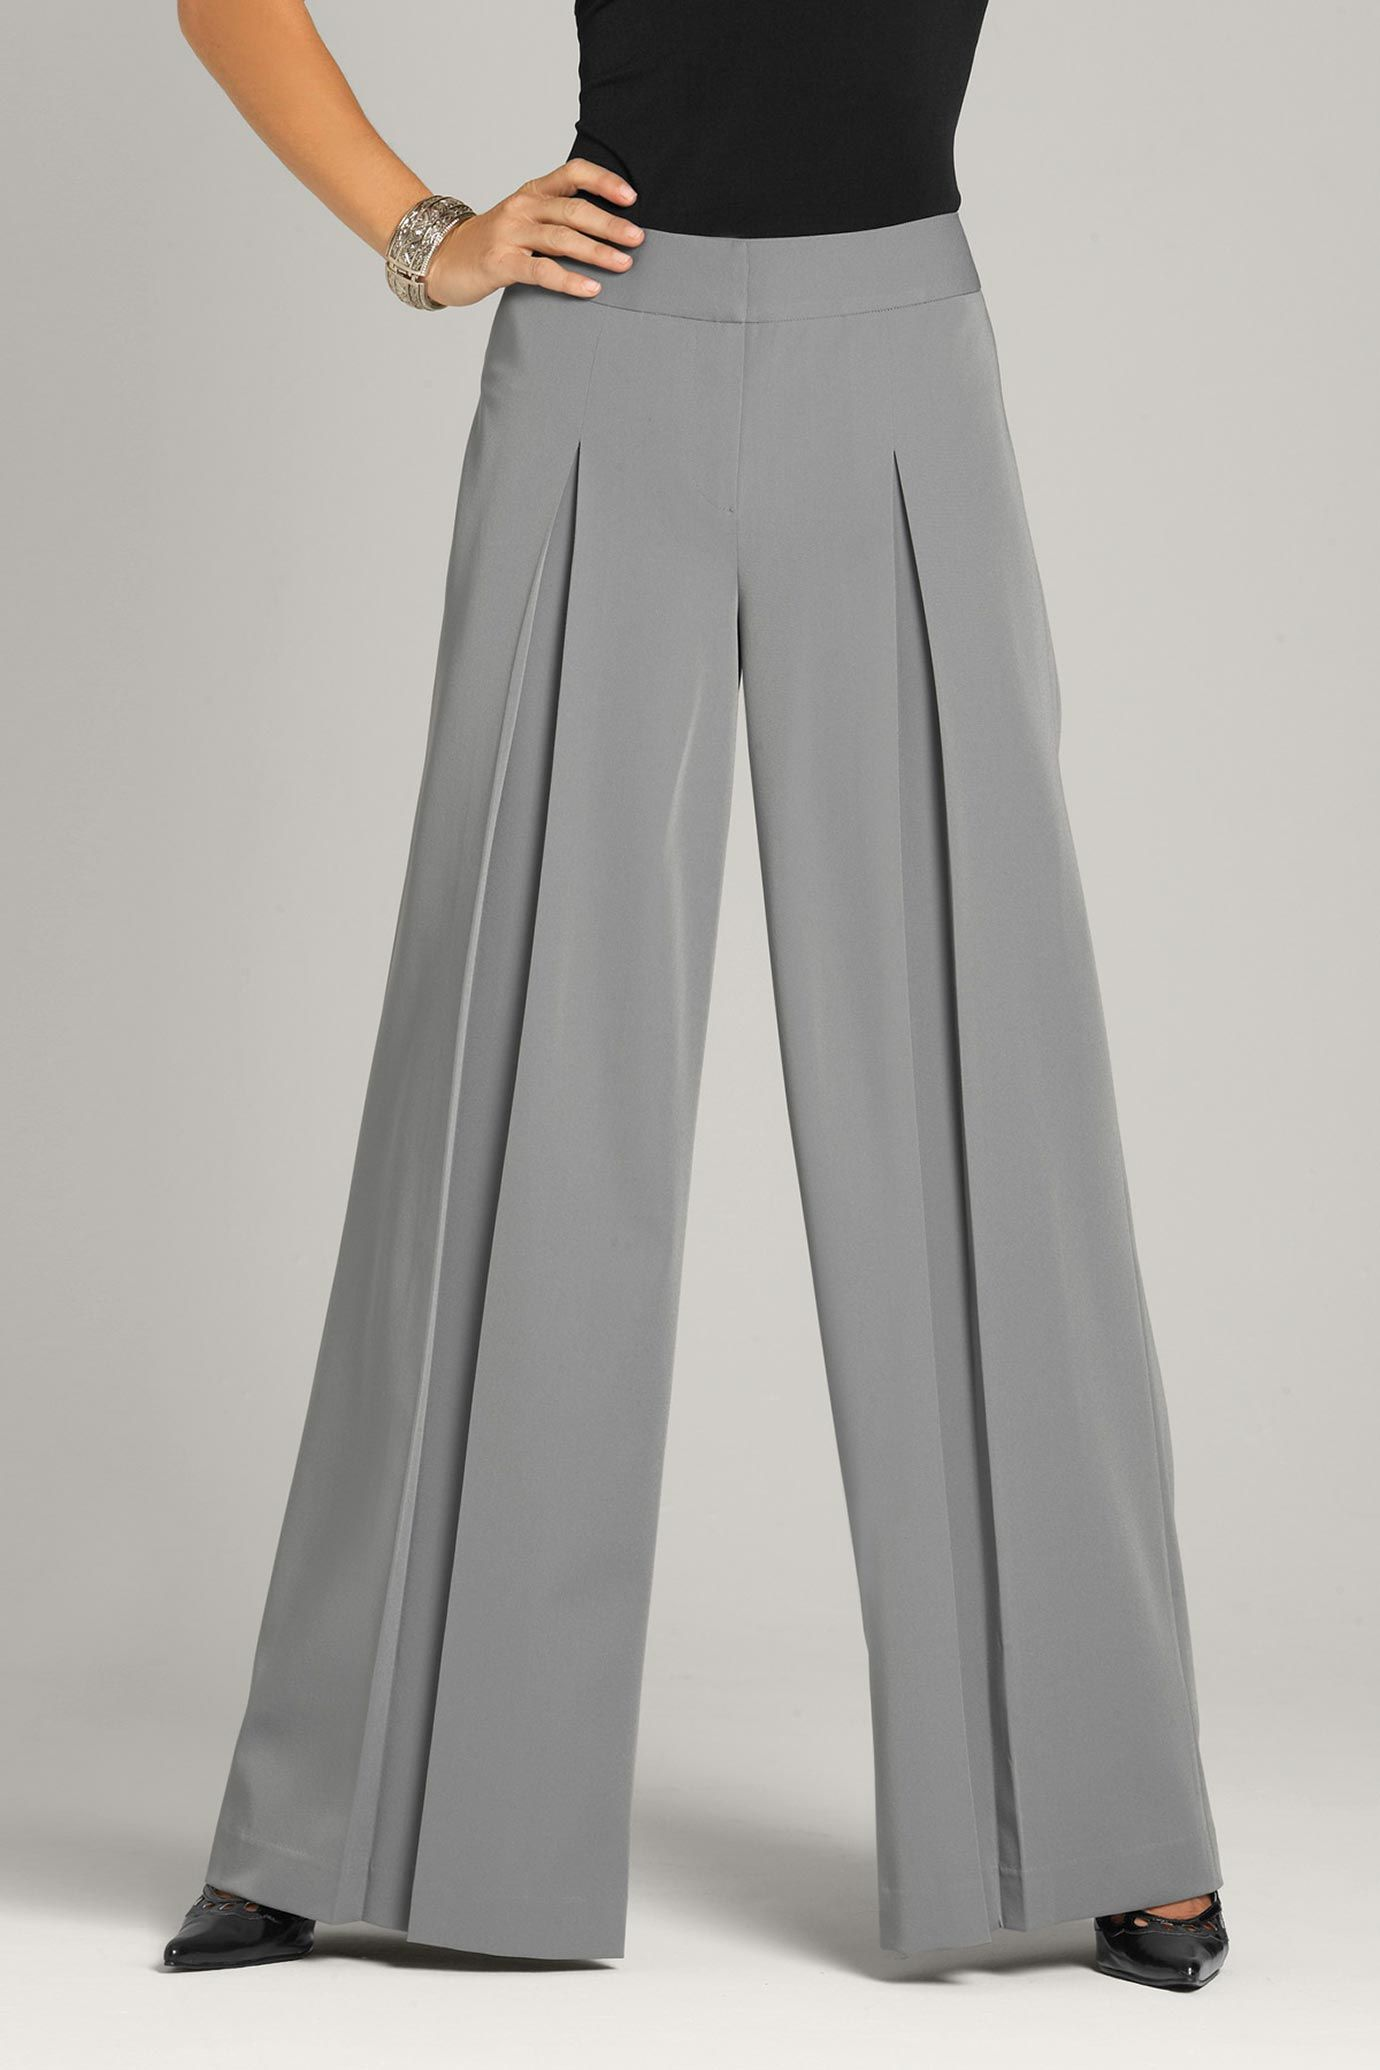 Crepe Pleated Trouser - Powder blue Love